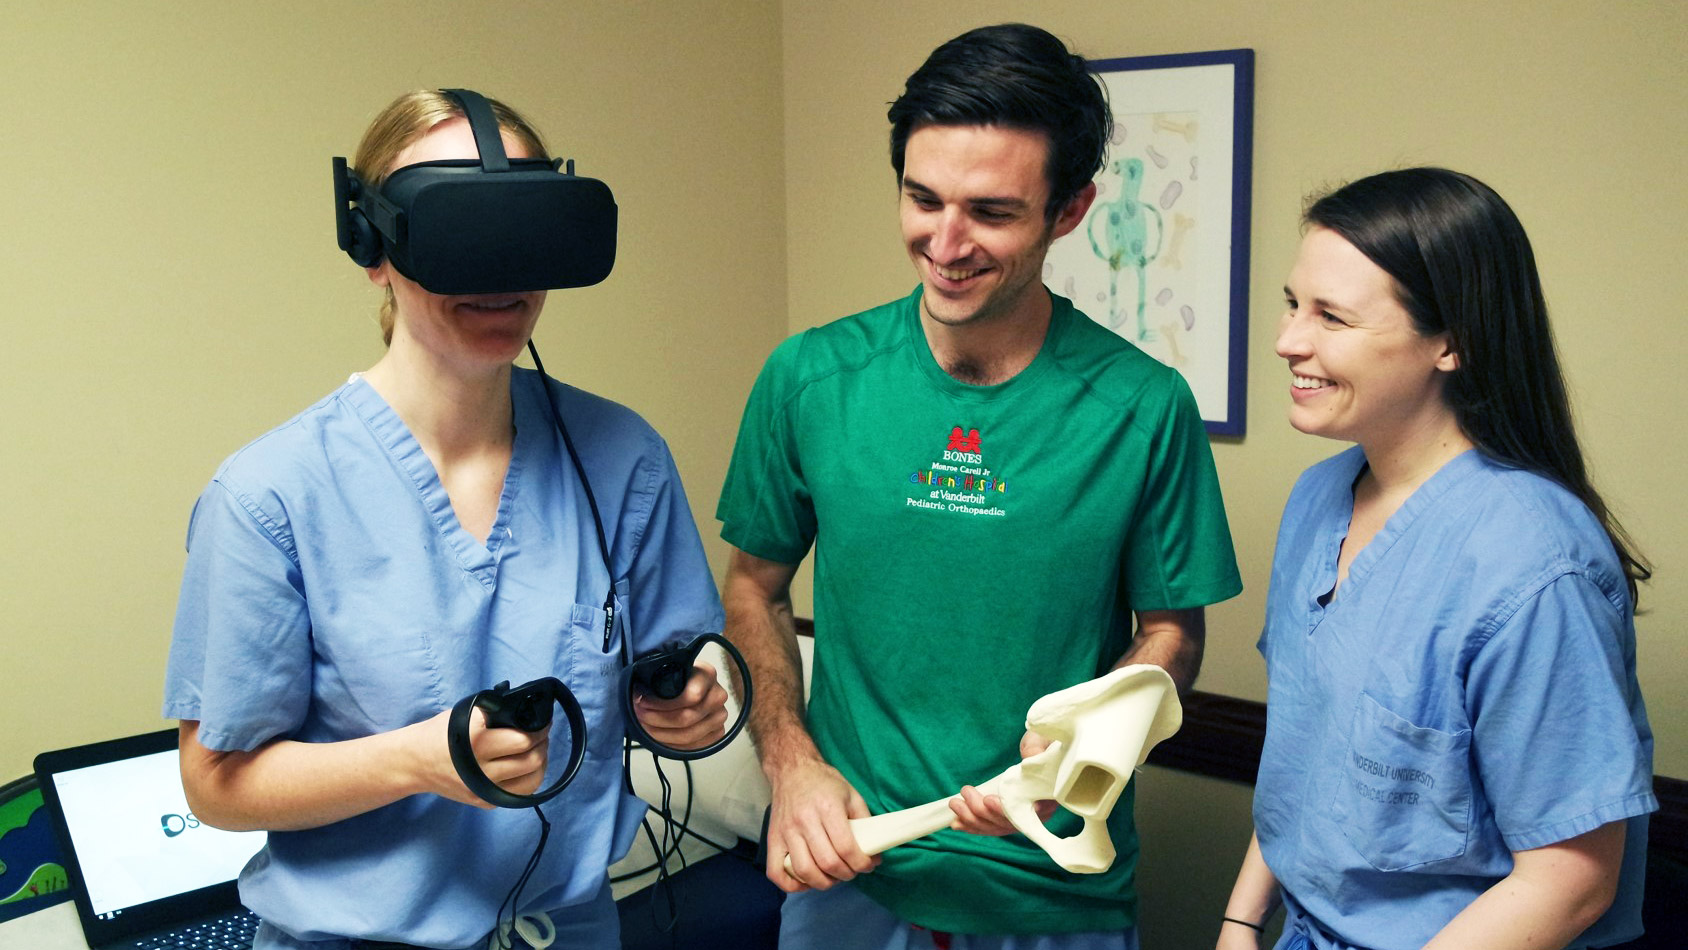 UCLA Surgical Training Study Shows VR Beats Traditional Training by 130%